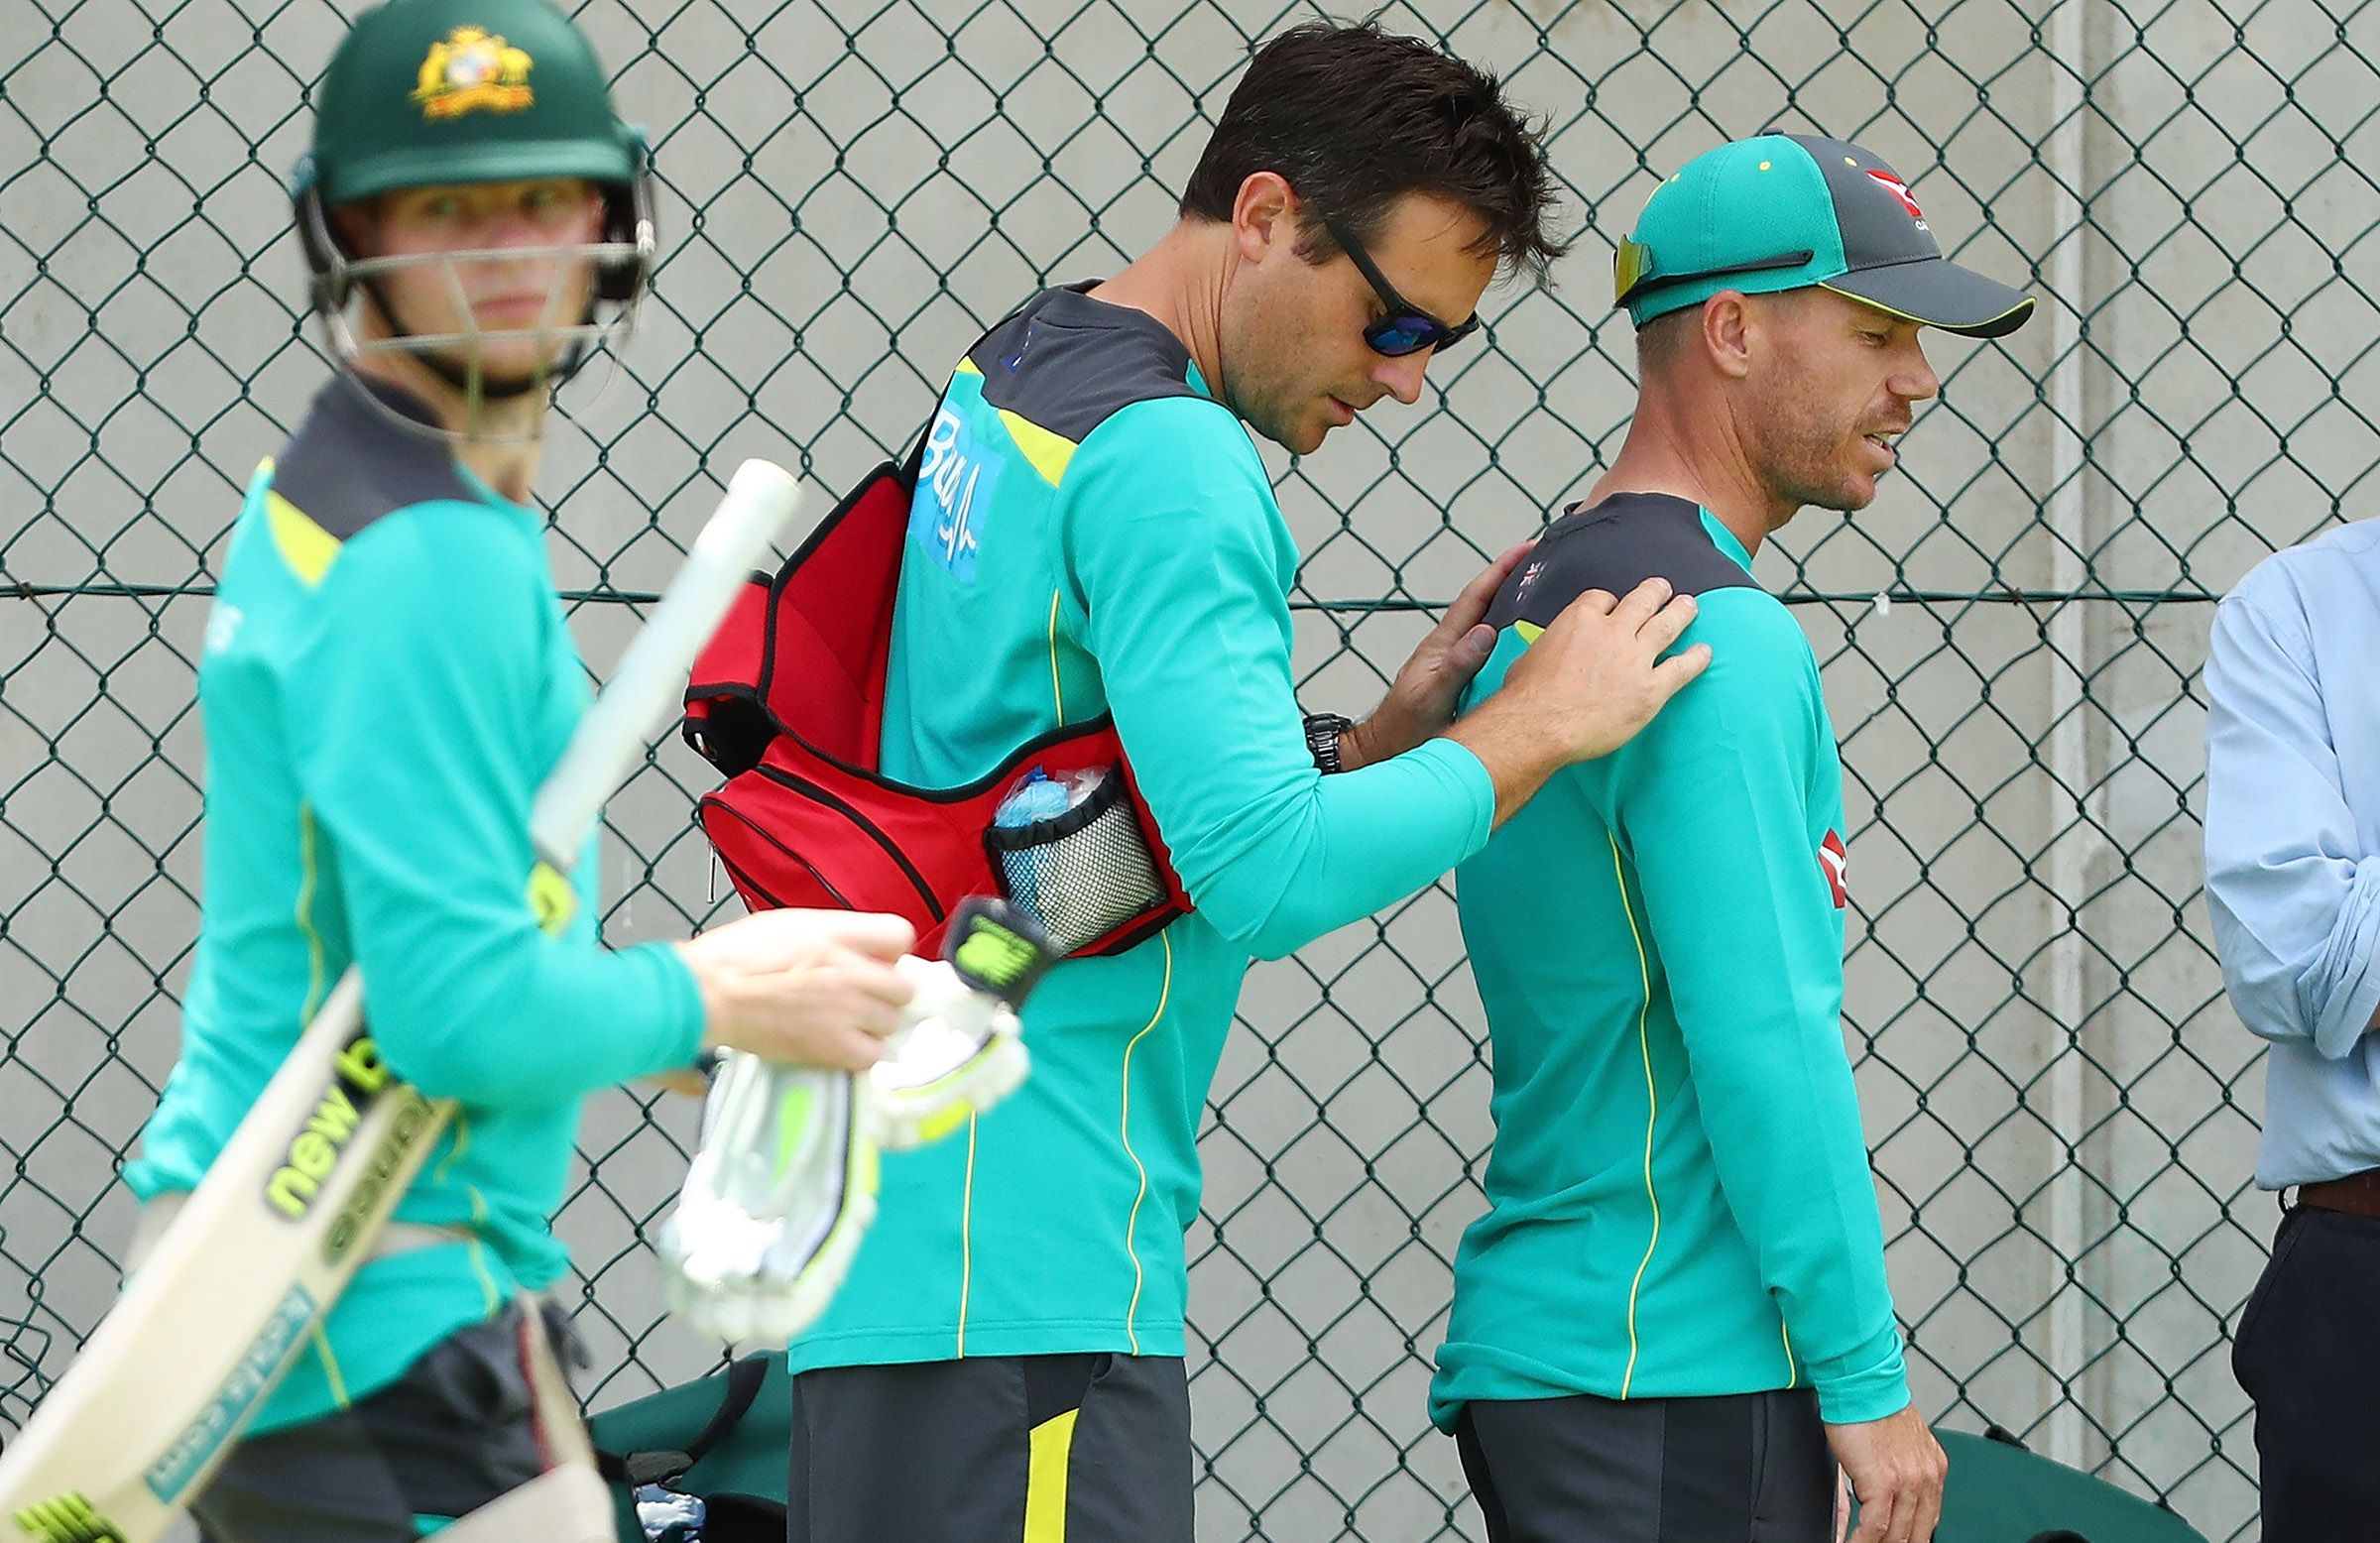 Warner received treatment on his neck at yesterday's net session // Getty